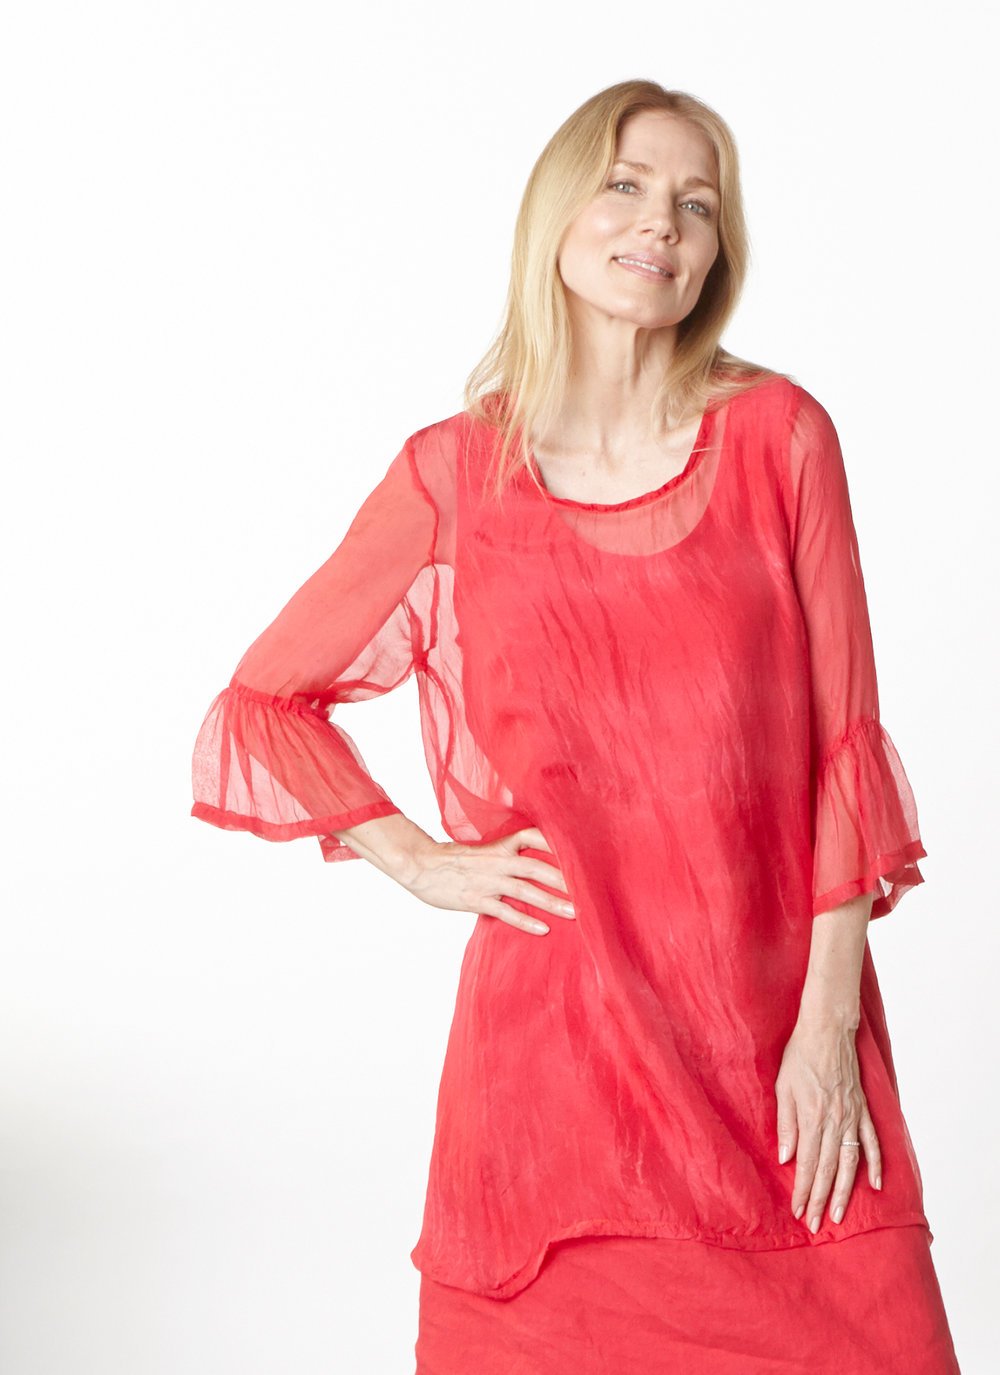 Phryne Tunic in Fuchsia Italian Sheer Tie Dye Silk, Luella Dress in Valerian Light Linen